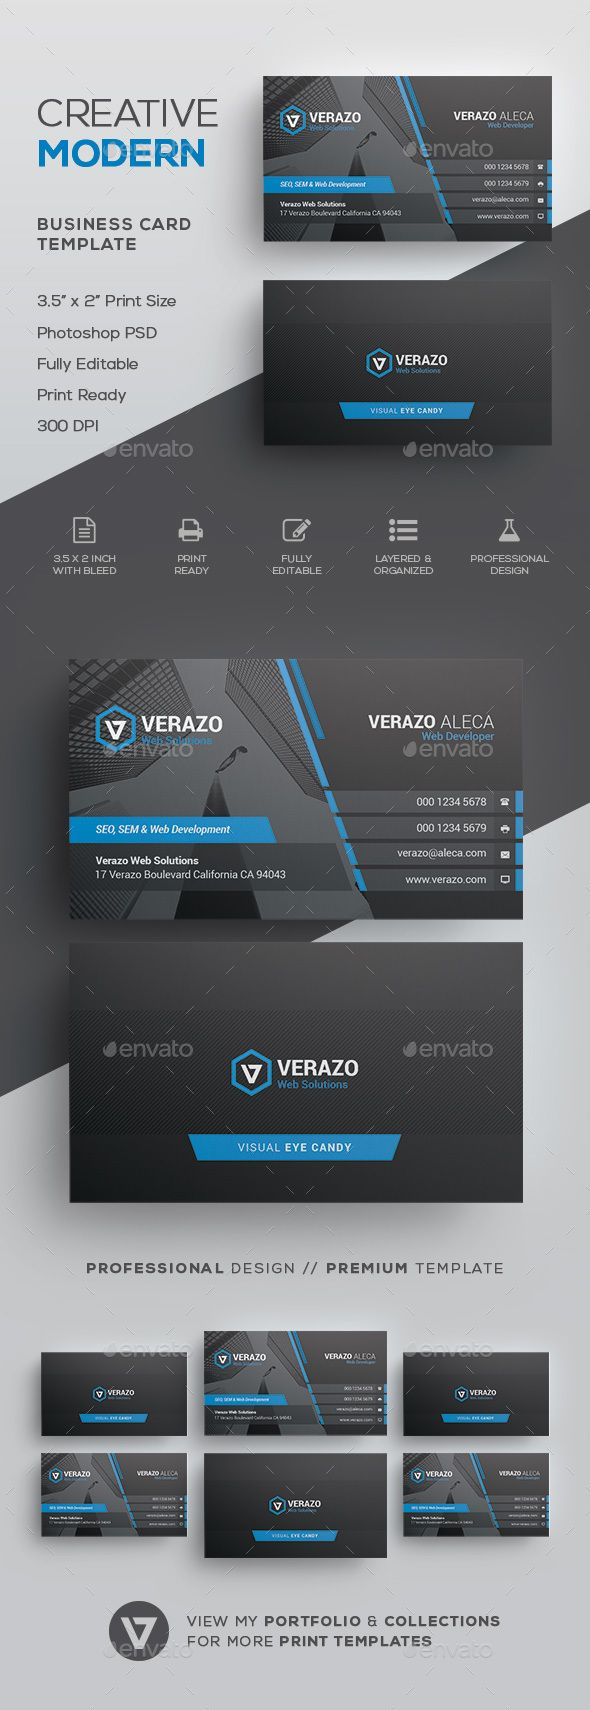 Modern Corporate Business Card Template - #Corporate #Business #Cards Download here: https://graphicriver.net/item/modern-corporate-business-card-template/19765153?ref=alena994